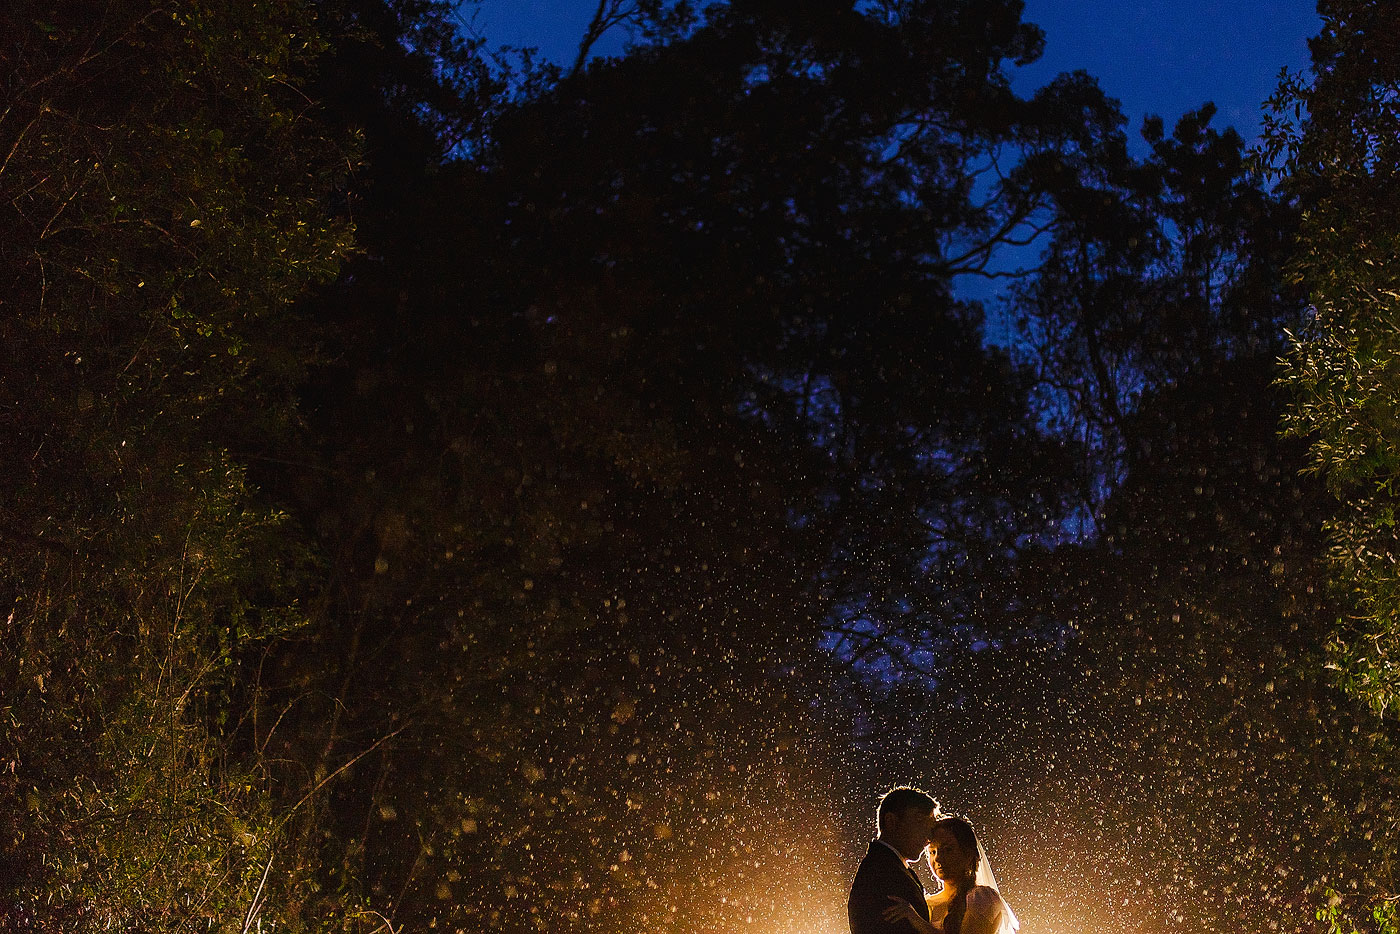 Rain Wedding Photo in the Forest